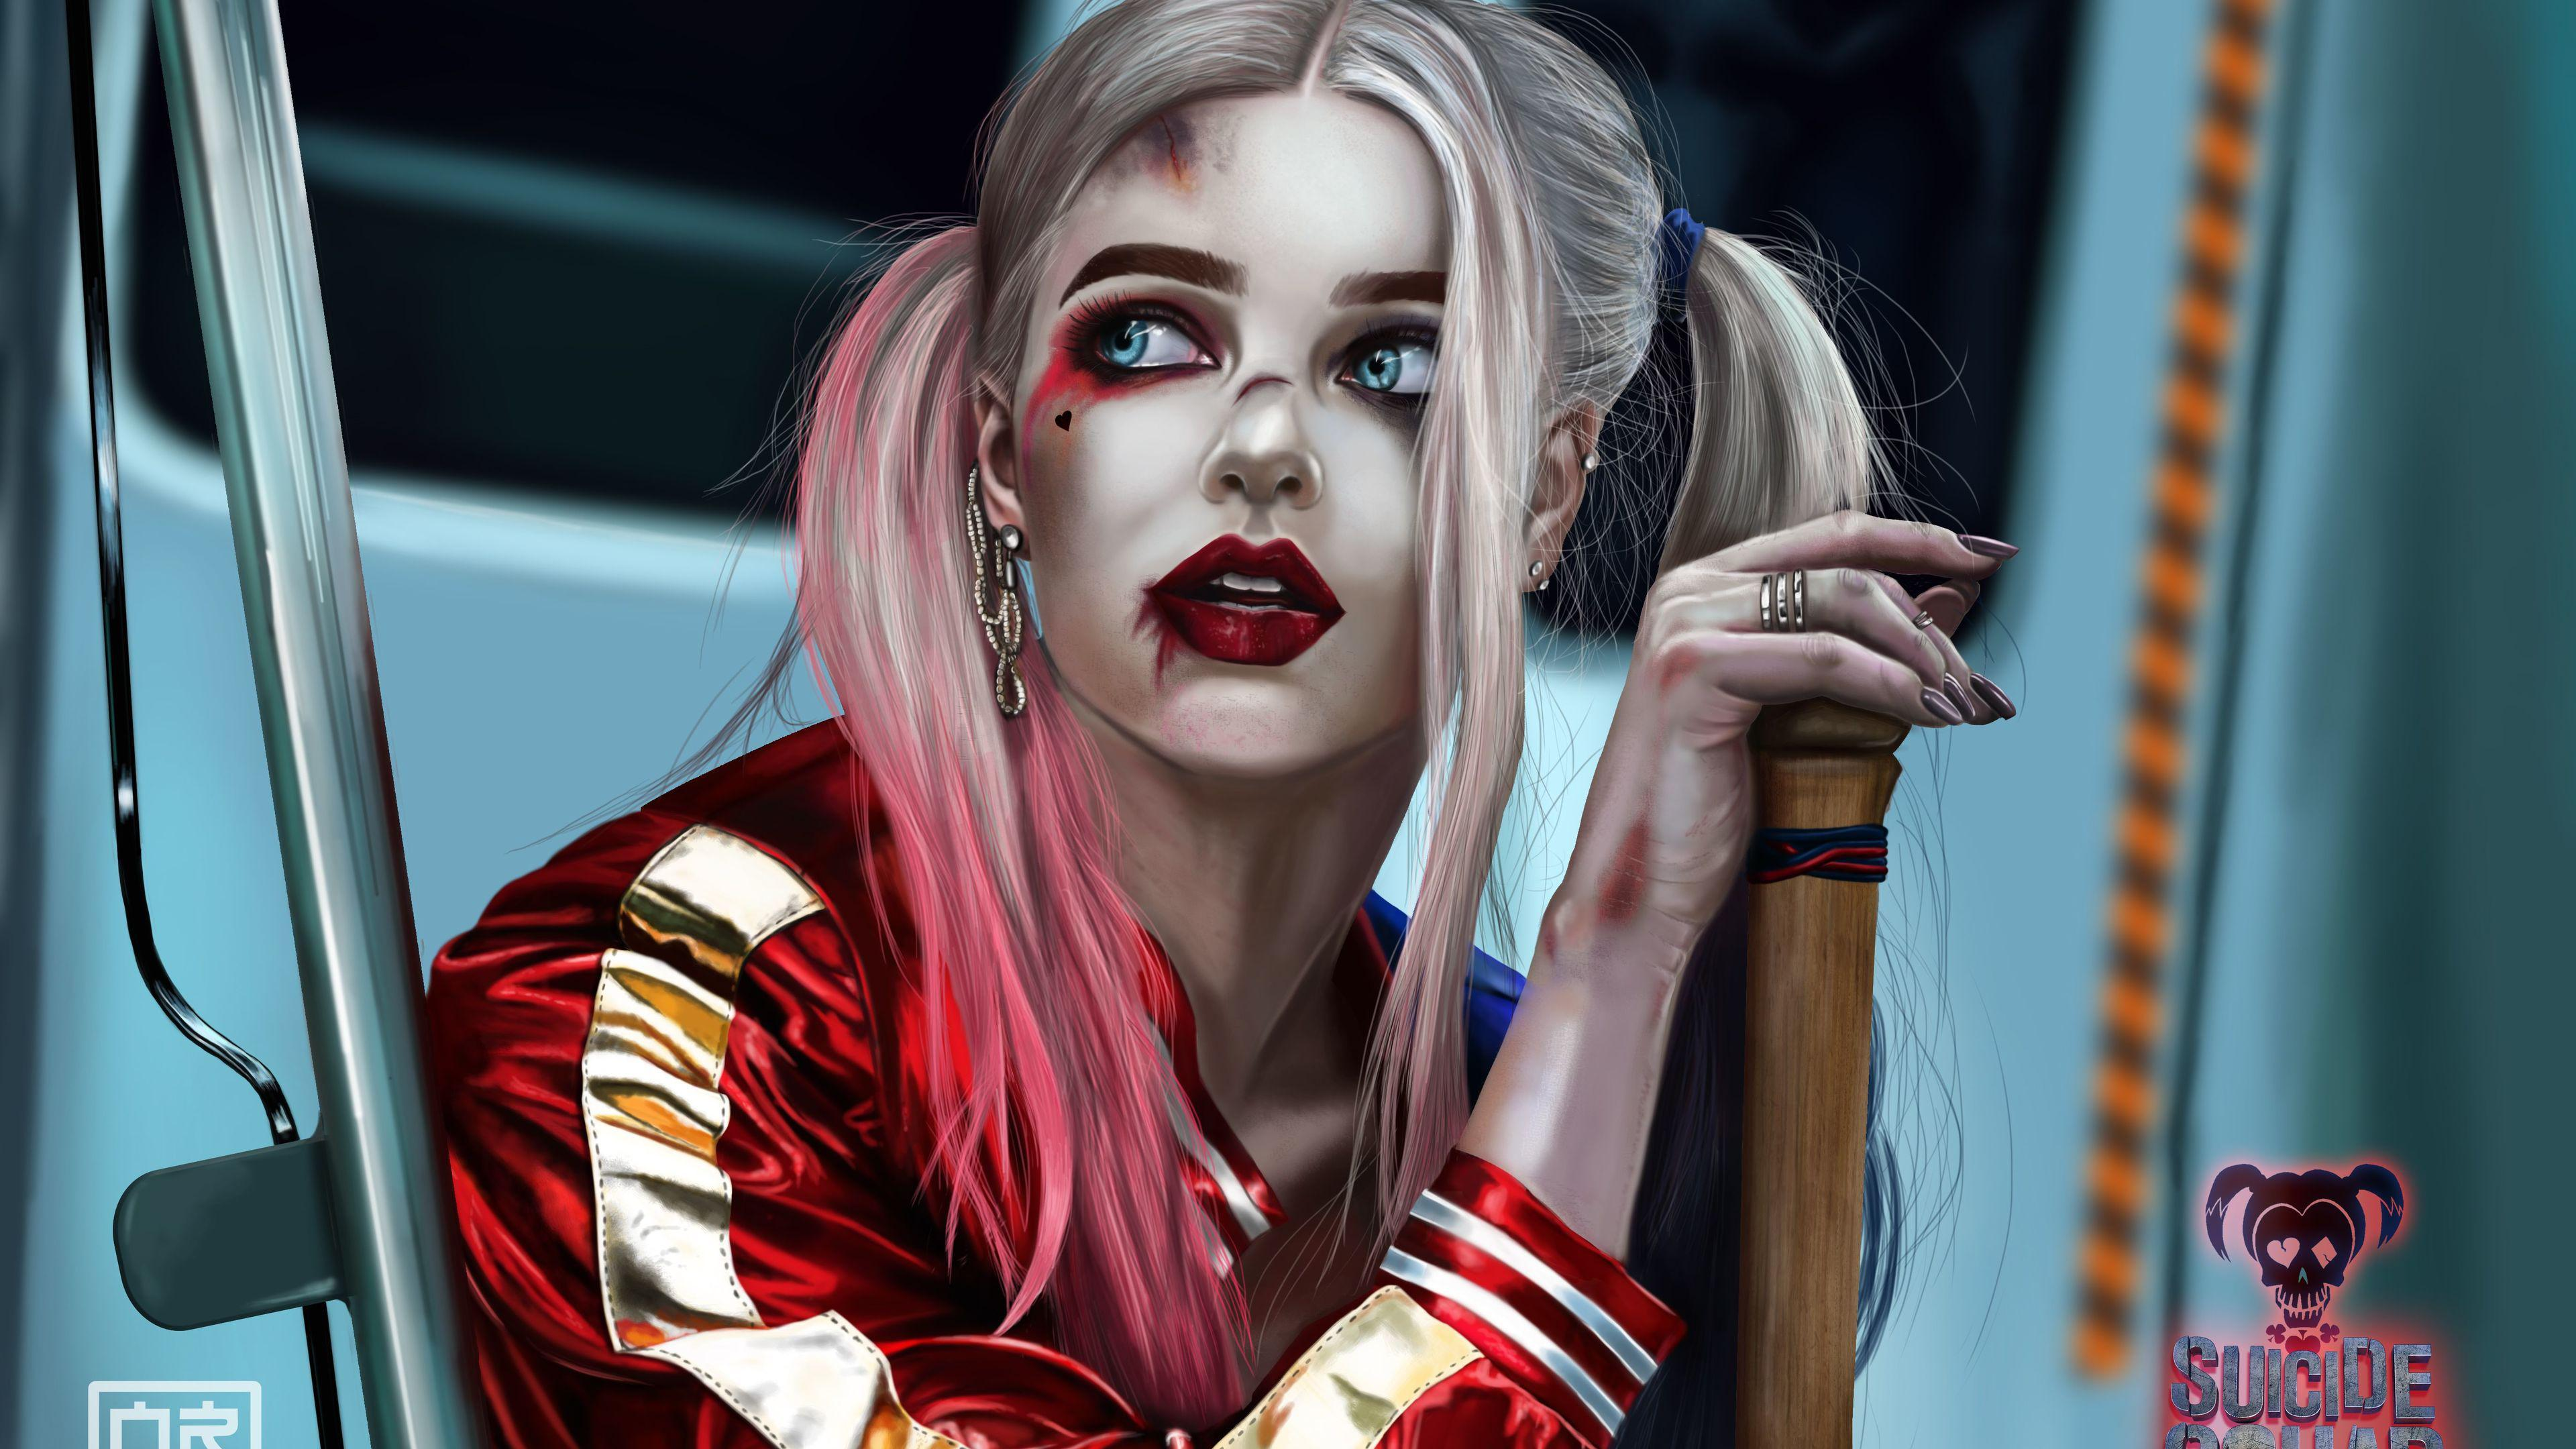 Wallpaper Suicide Squad Harley Quinn Margot Robbie Will